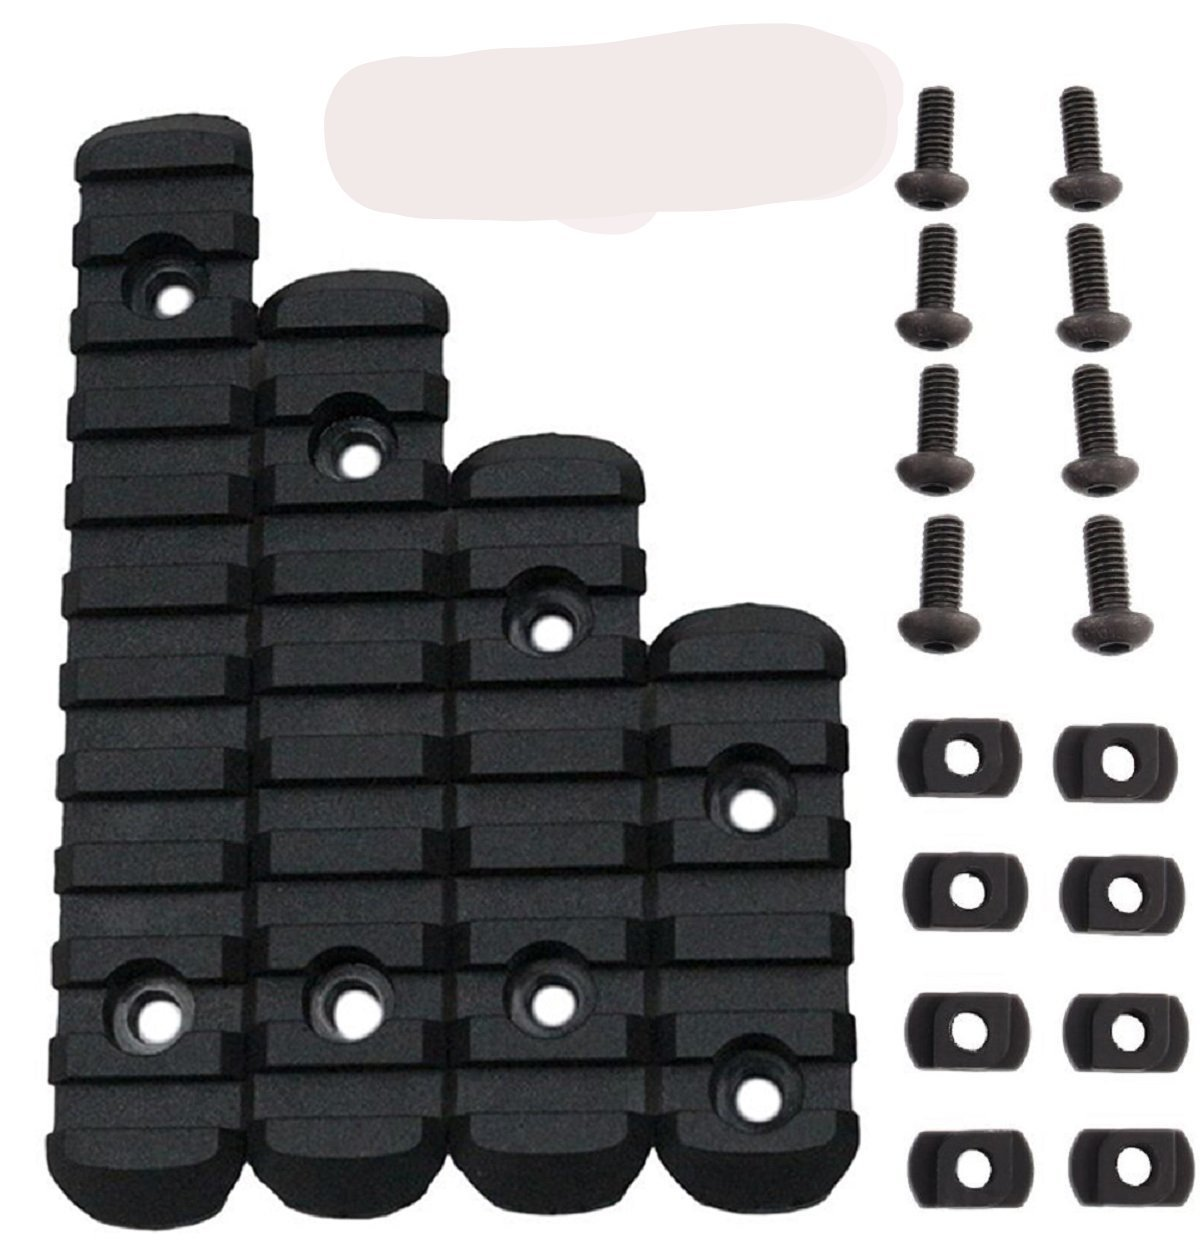 Camming T-Nuts Rails Polymer Rail Sections 5,7,9,11 Slots, L2, L3, L4, L5 Picatinny Rail Sizes, Heavy Duty Polymer Picatinny/Weaver Rails Scope Mounts & Accessories Green Blob Outdoors